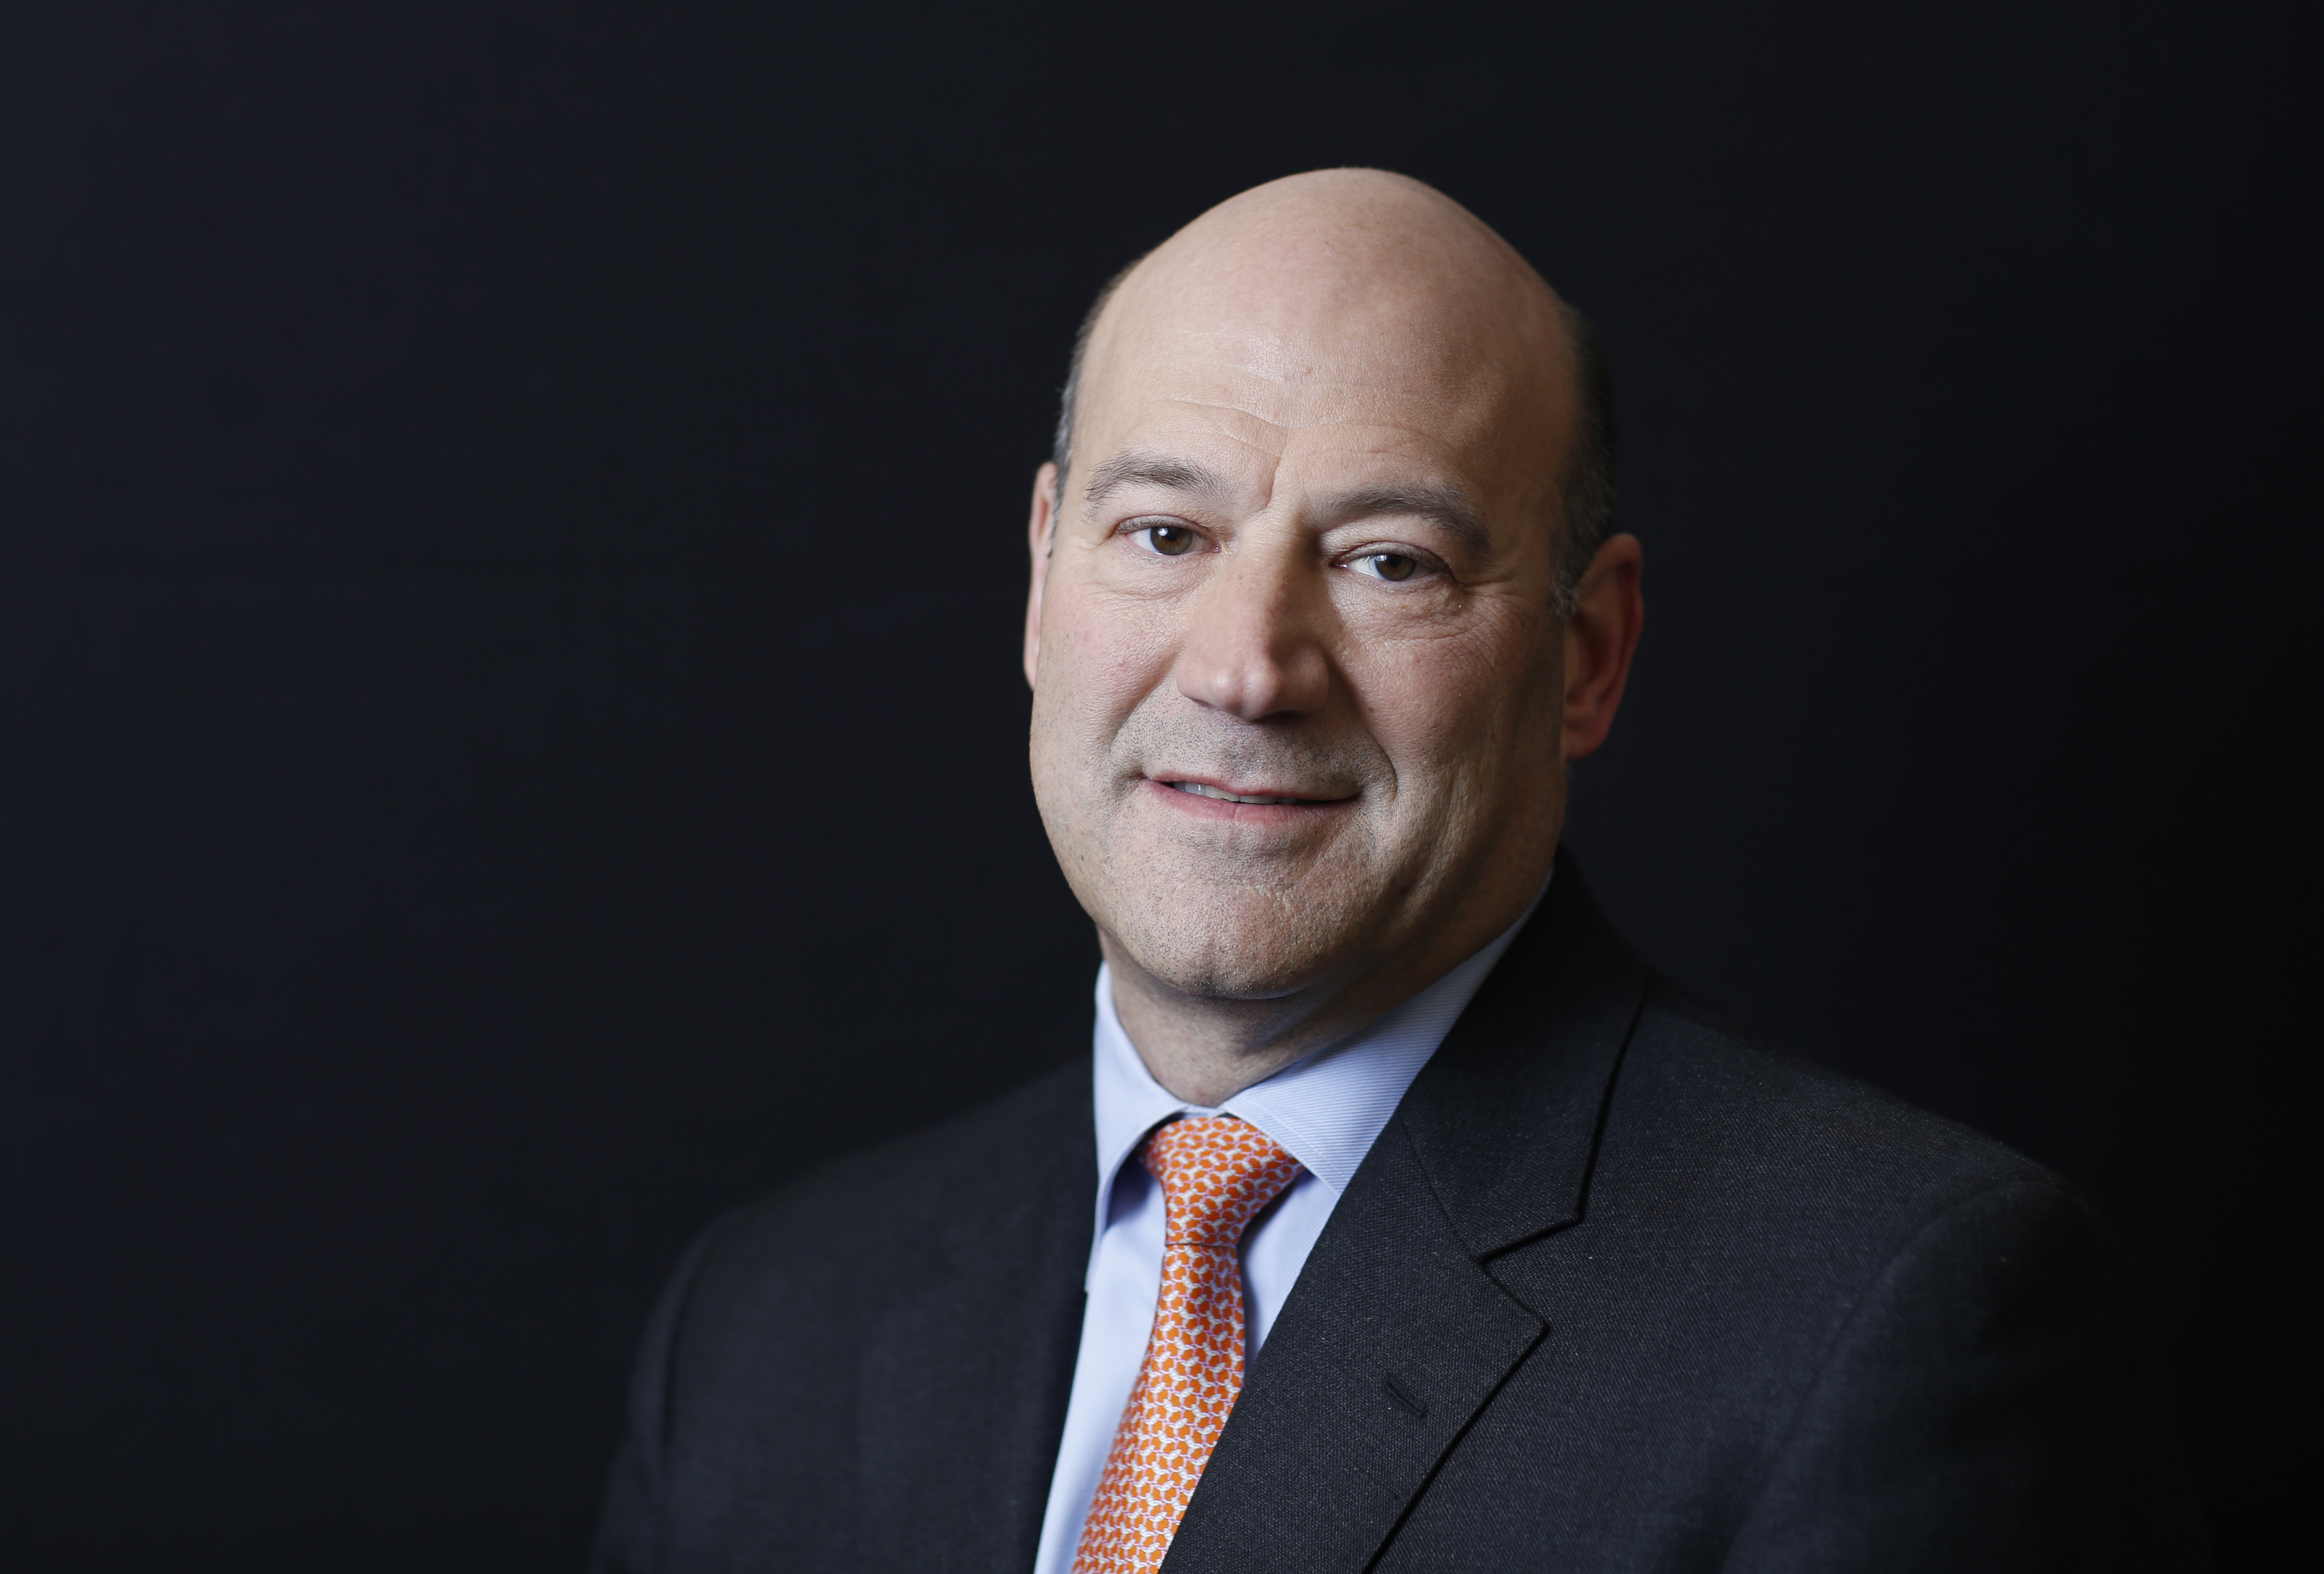 Gary D. Cohn, president and chief operating officer of Goldman Sachs Group Inc., poses for a photograph following a Bloomberg Television interview on day two of the World Economic Forum (WEF) in Davos, Switzerland, on Thursday, Jan. 24, 2013.